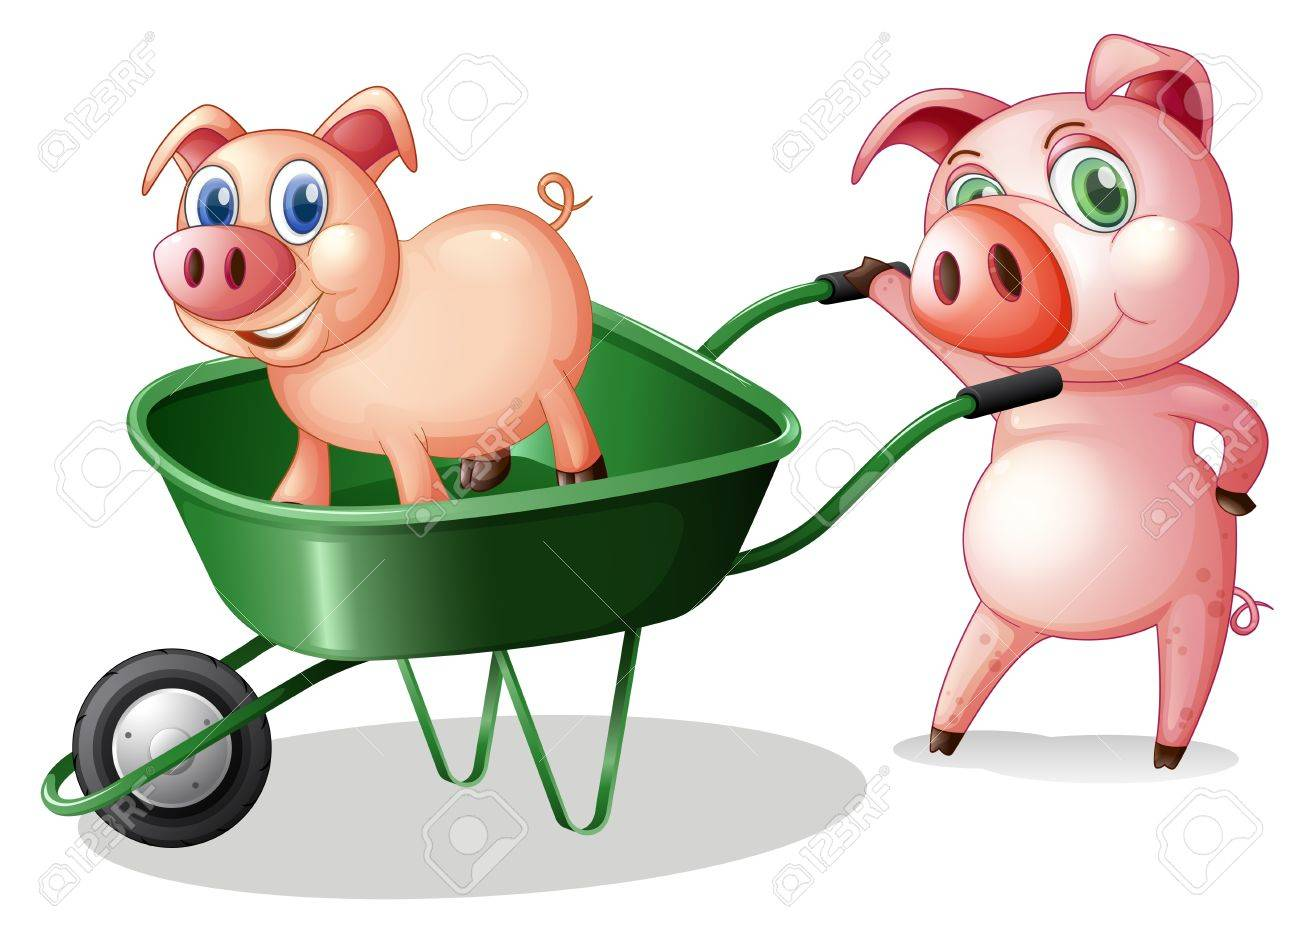 Illustration of the two pigs with a green cart on a white background Stock Vector - 19301562